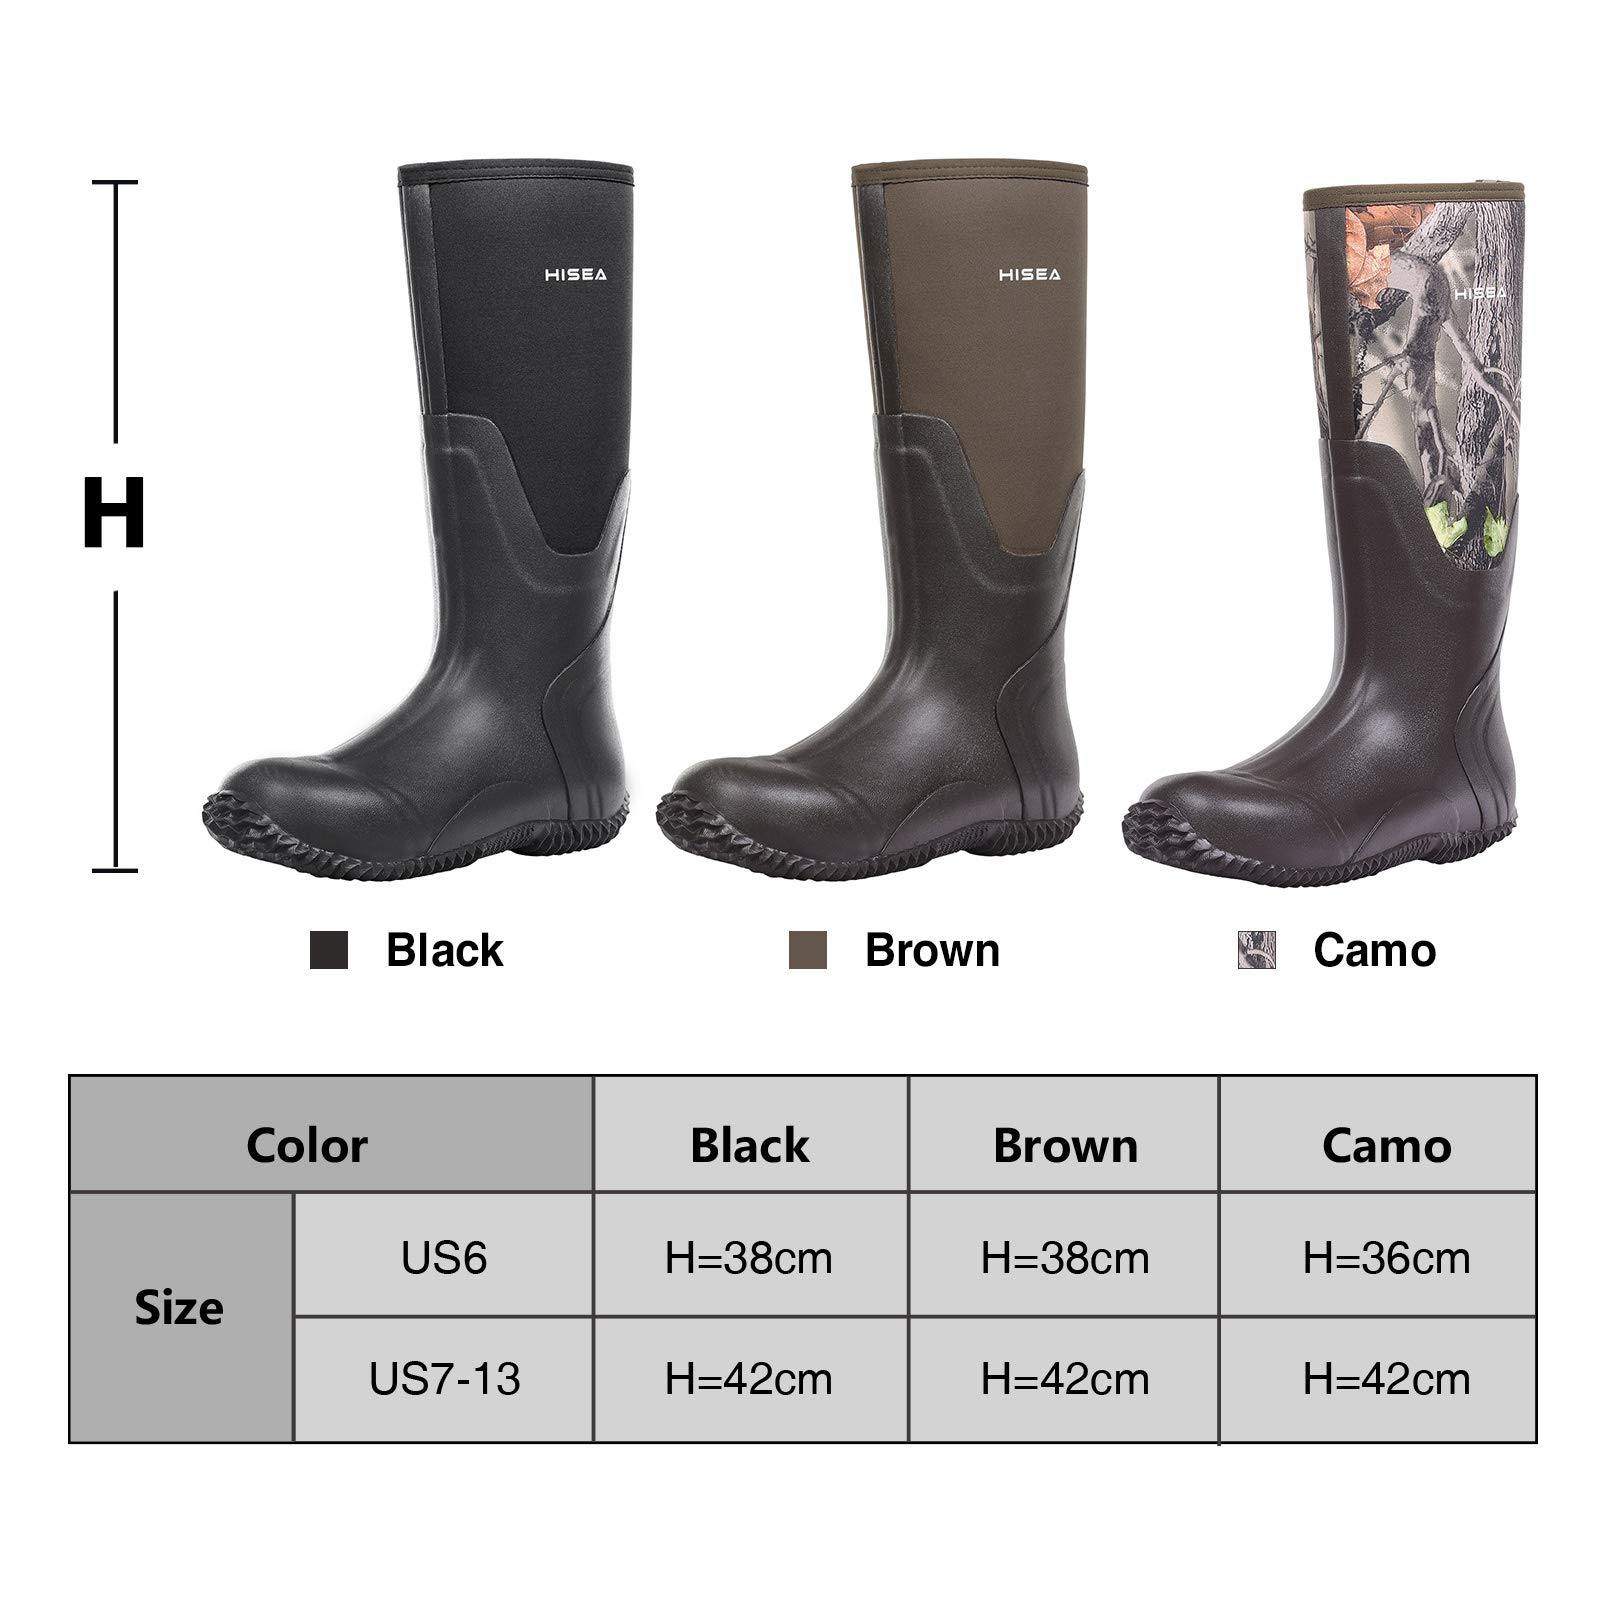 Hisea Mens Insulated Rubber Neoprene Boots Waterproof Durable Insulated Outdoor Winter Snow Rain Boots Hunting Arctic Boot Camo Size 8 by Hisea (Image #4)